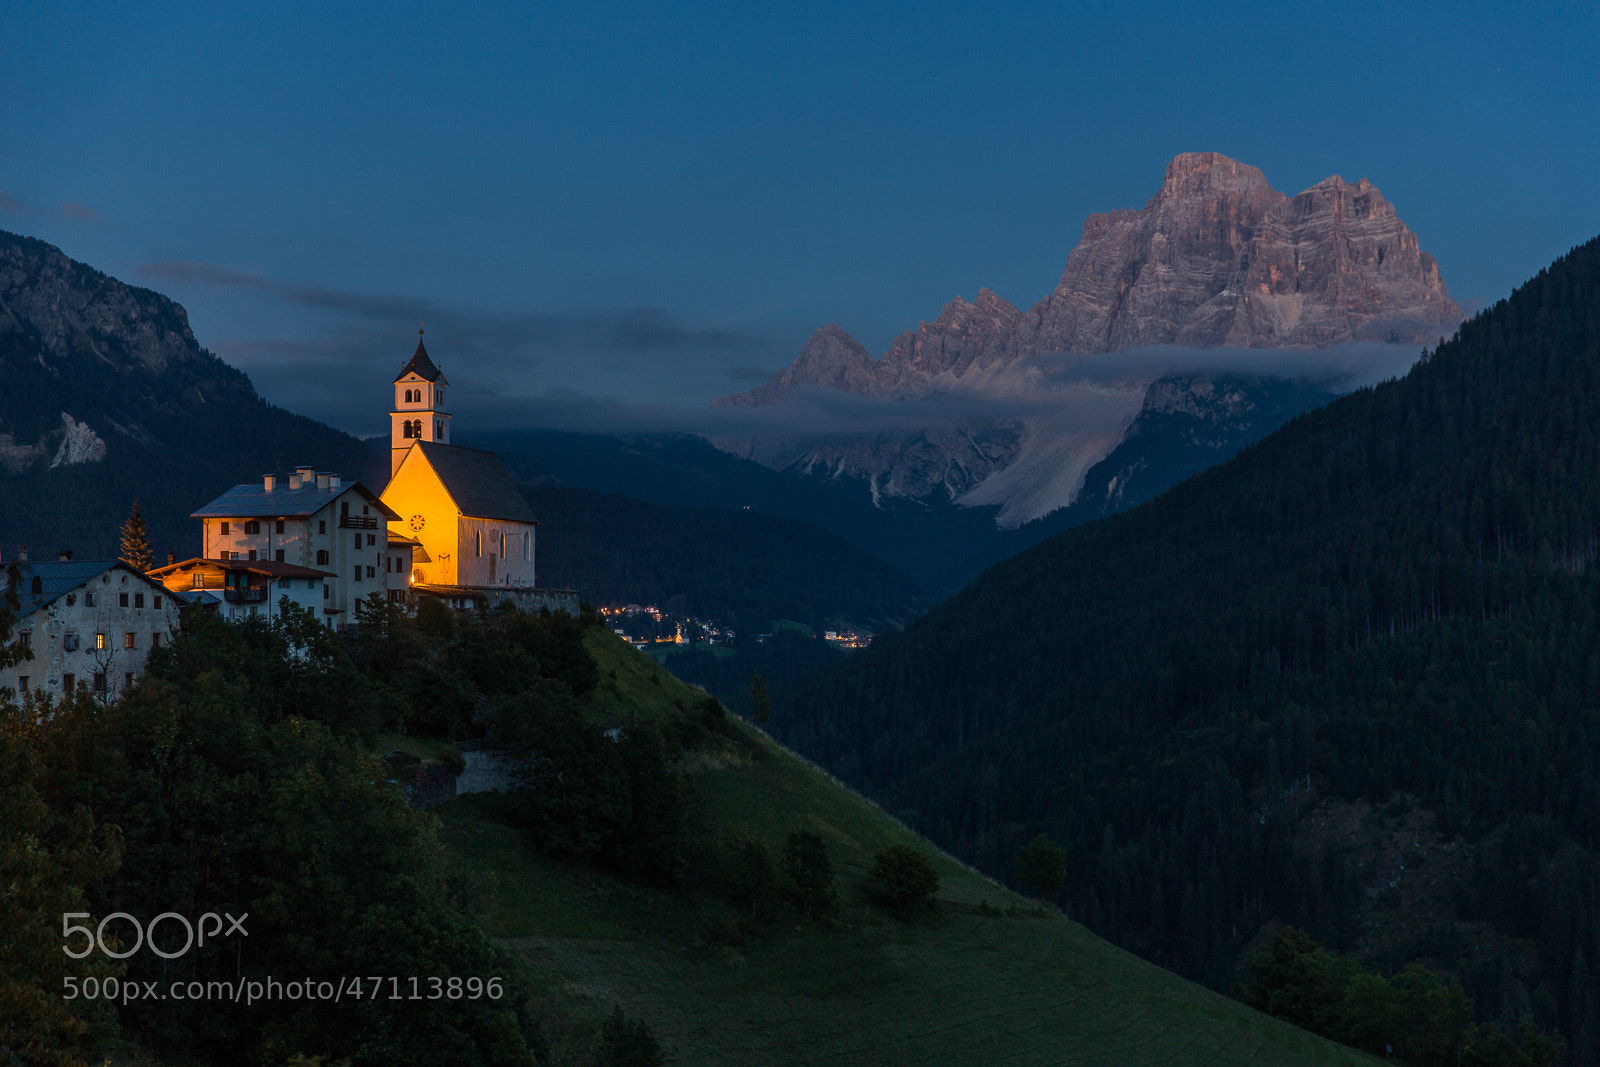 Photograph Colle Santa Lucia after sunset by Hans Kruse on 500px